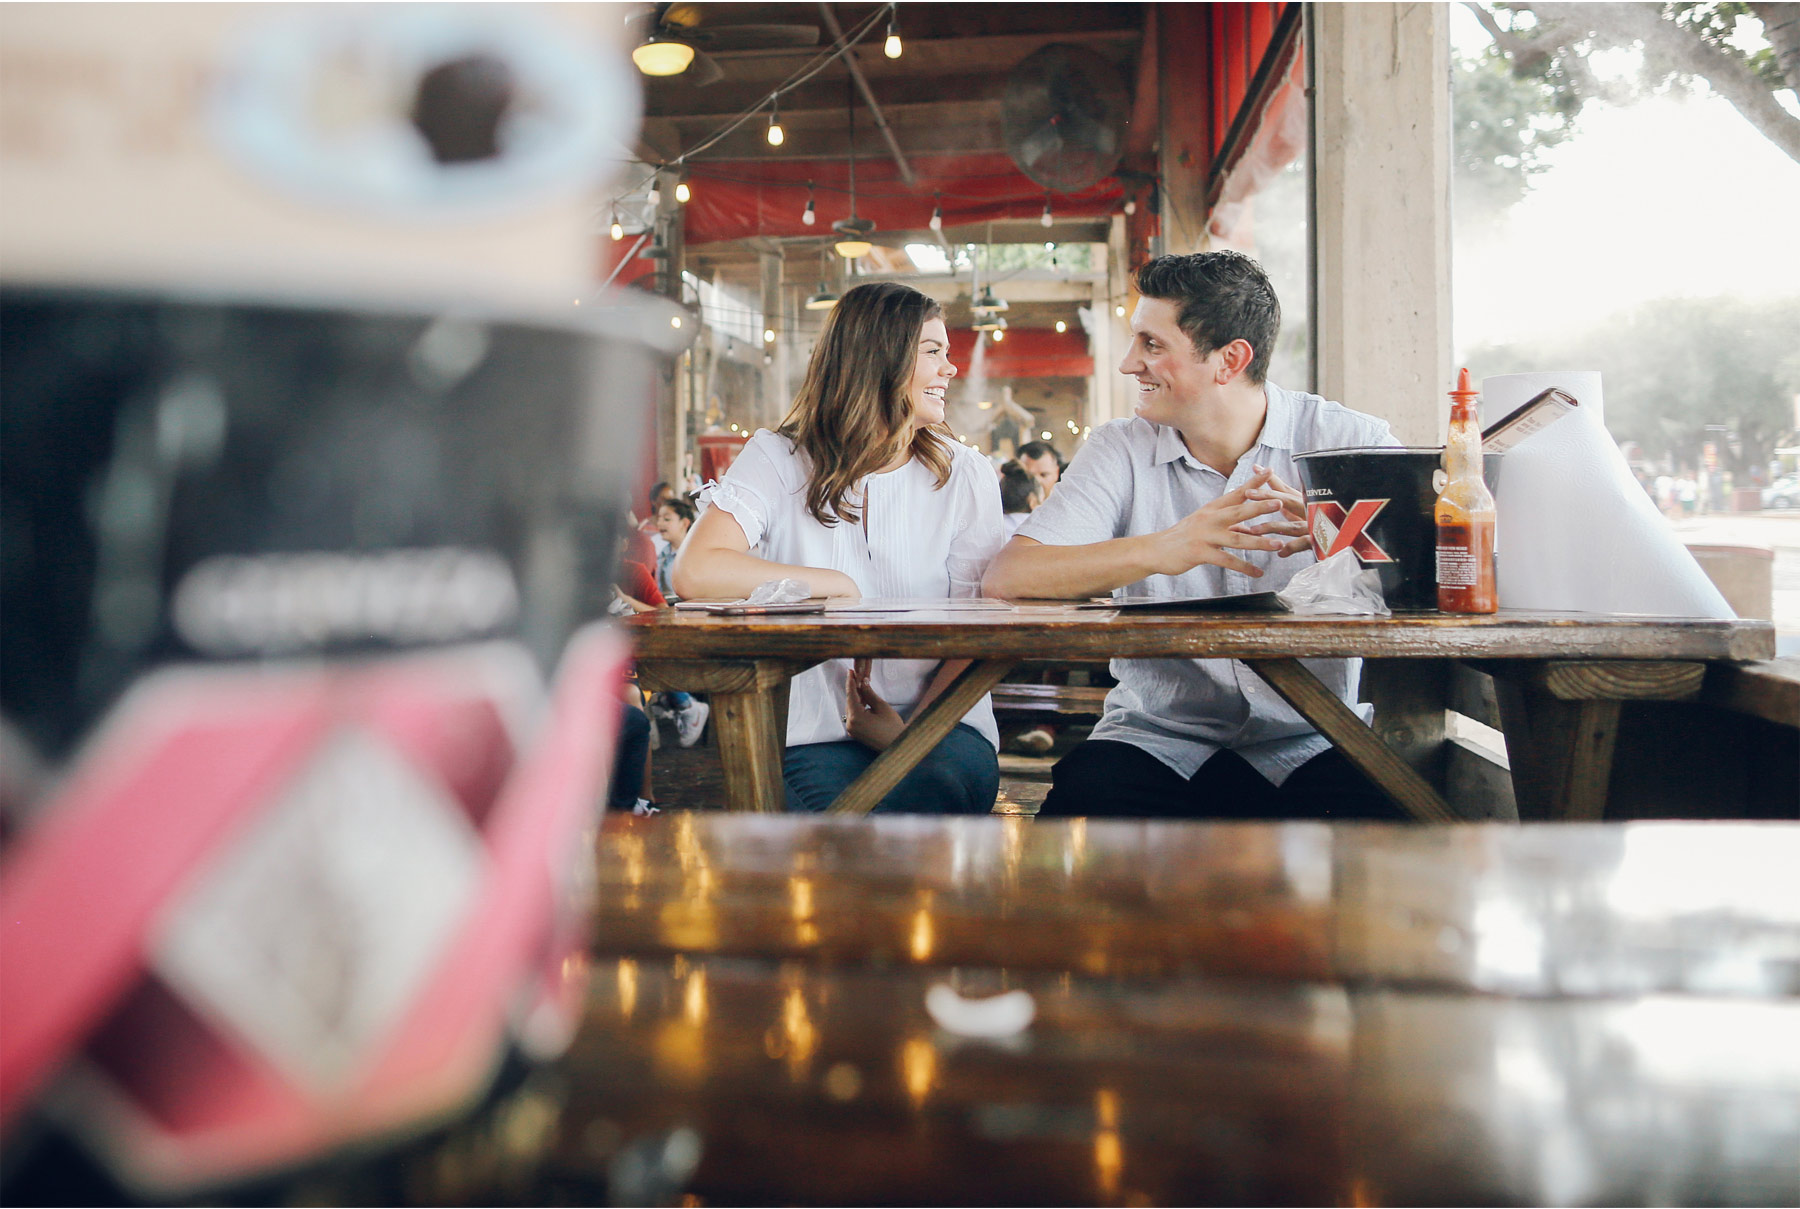 09-Fly-to-Me-Destination-Engagement-Session-Vick-Photography-Fort-Worth-Texas-Couple-BBQ-Maggie-and-Matt.jpg